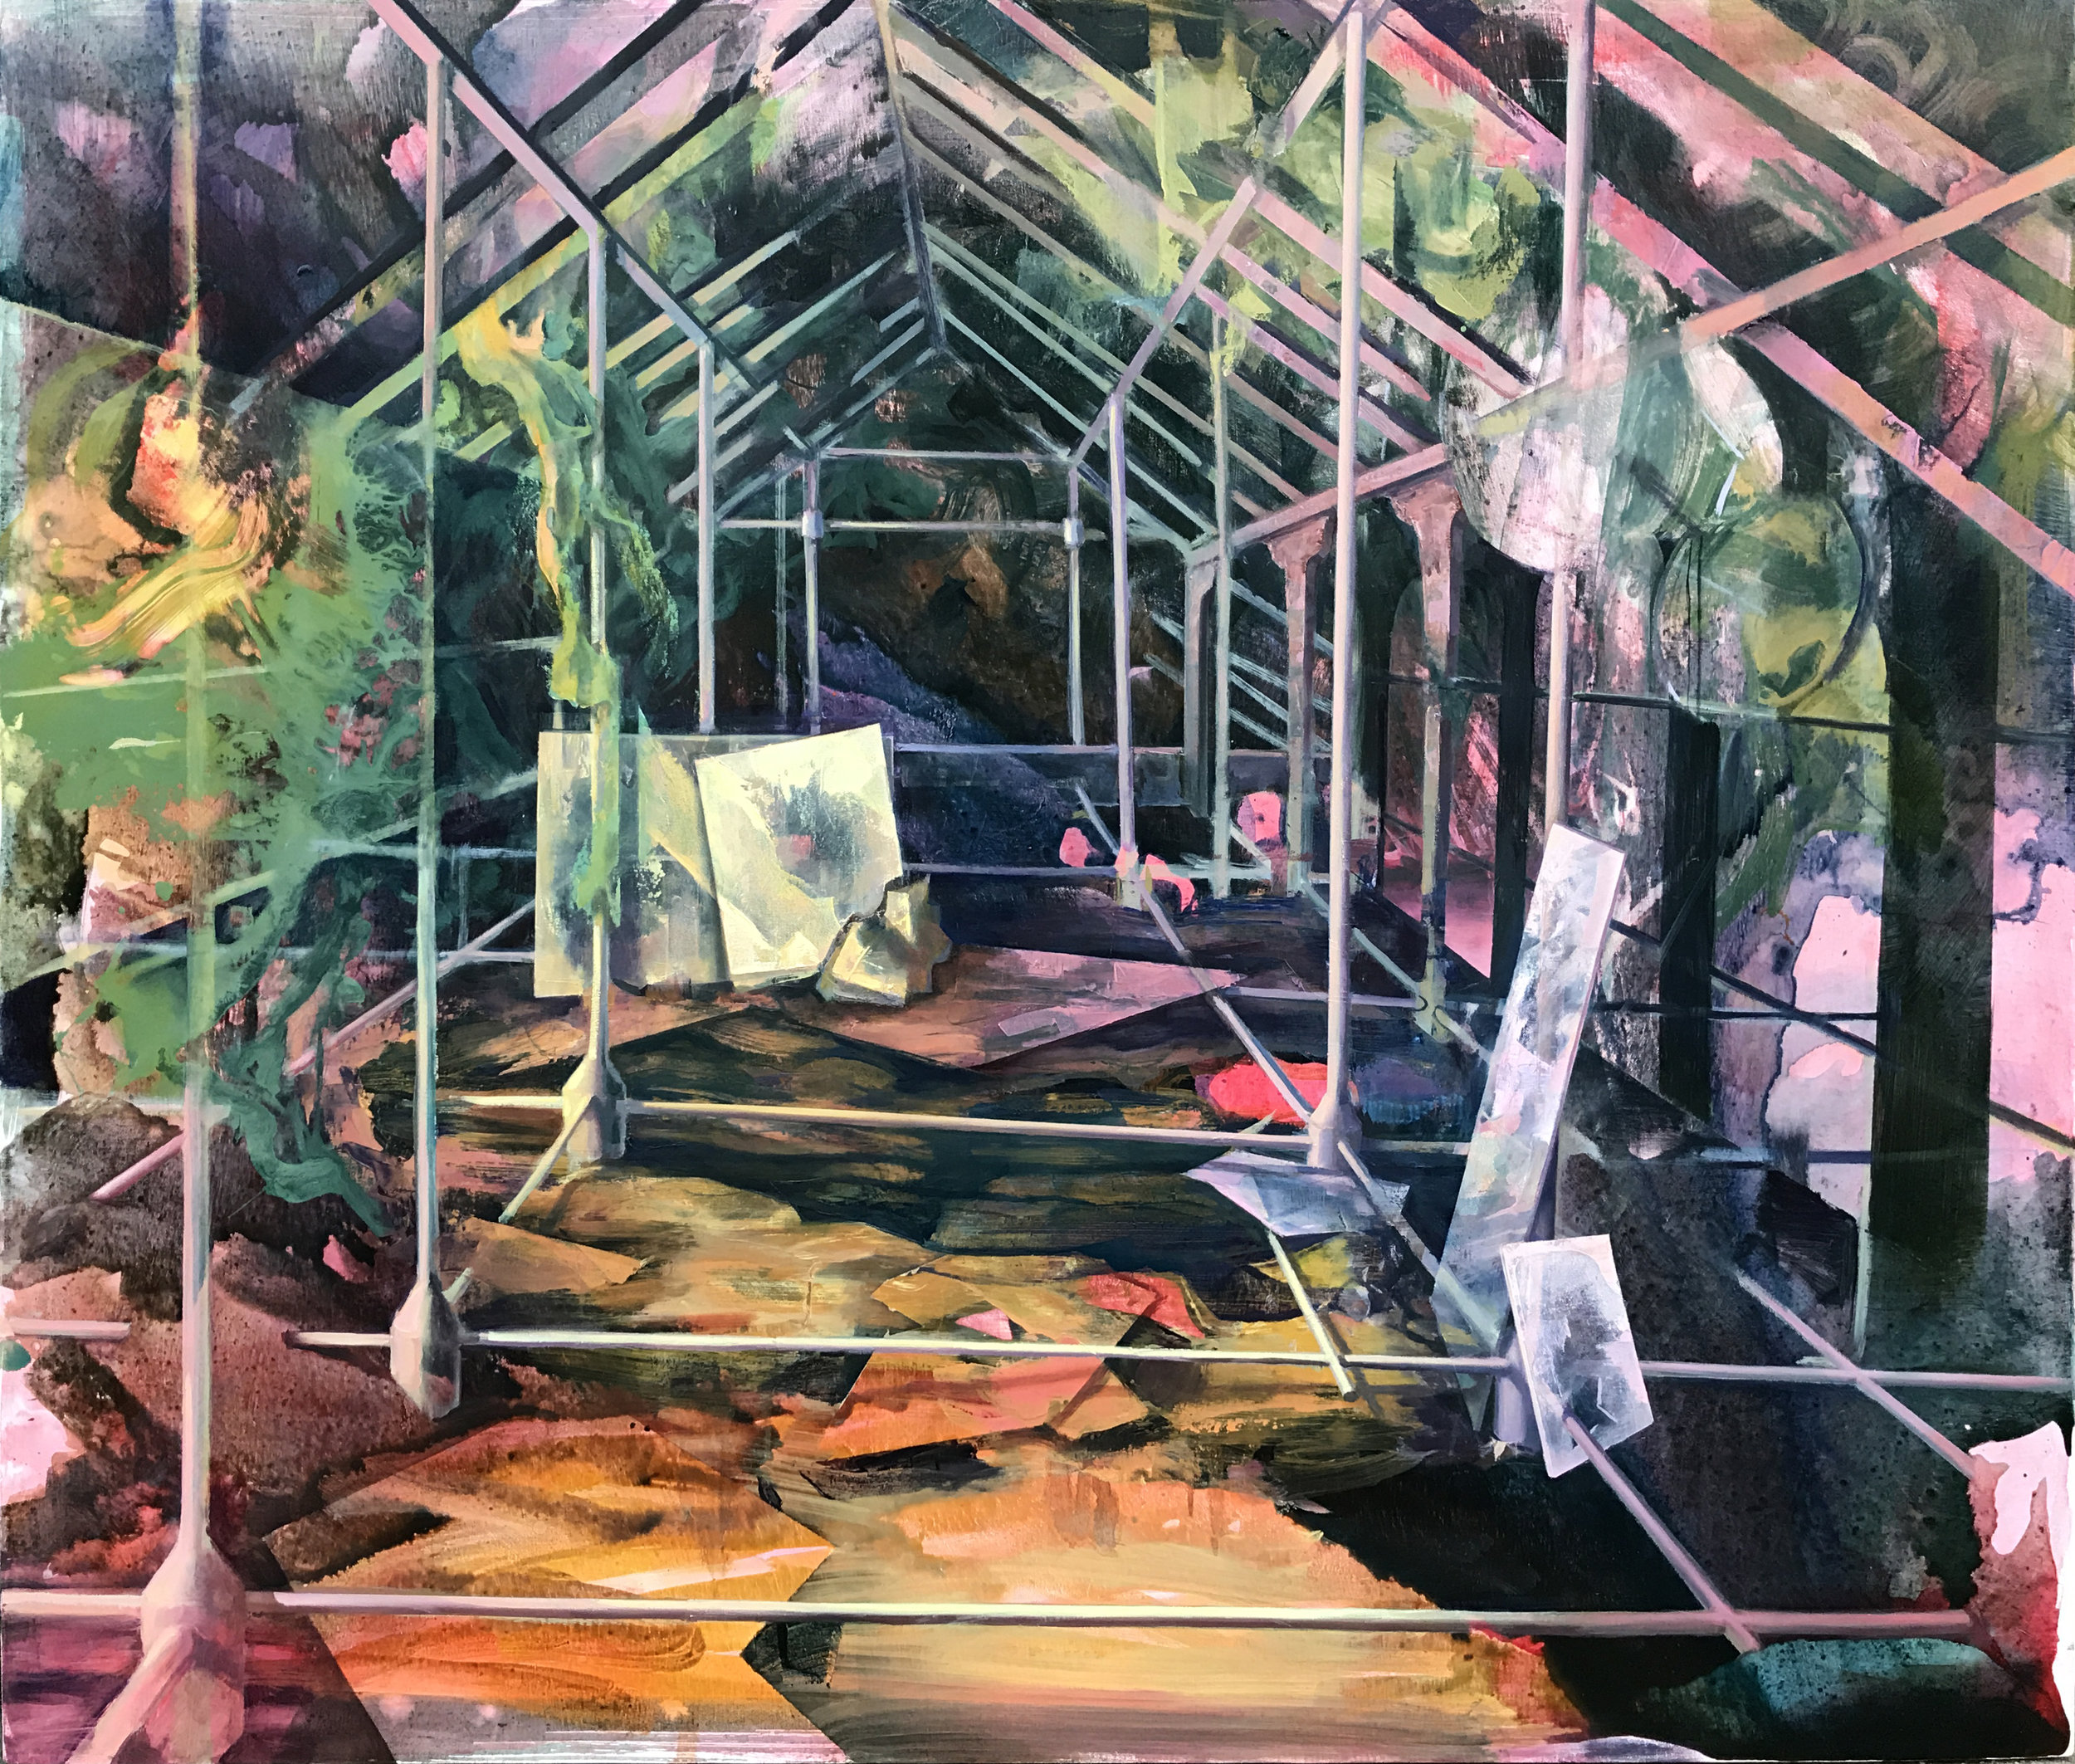 Greenhouse, 2017 ink, acrylic, and oil on canvas 56 x 44 inches   Inquire